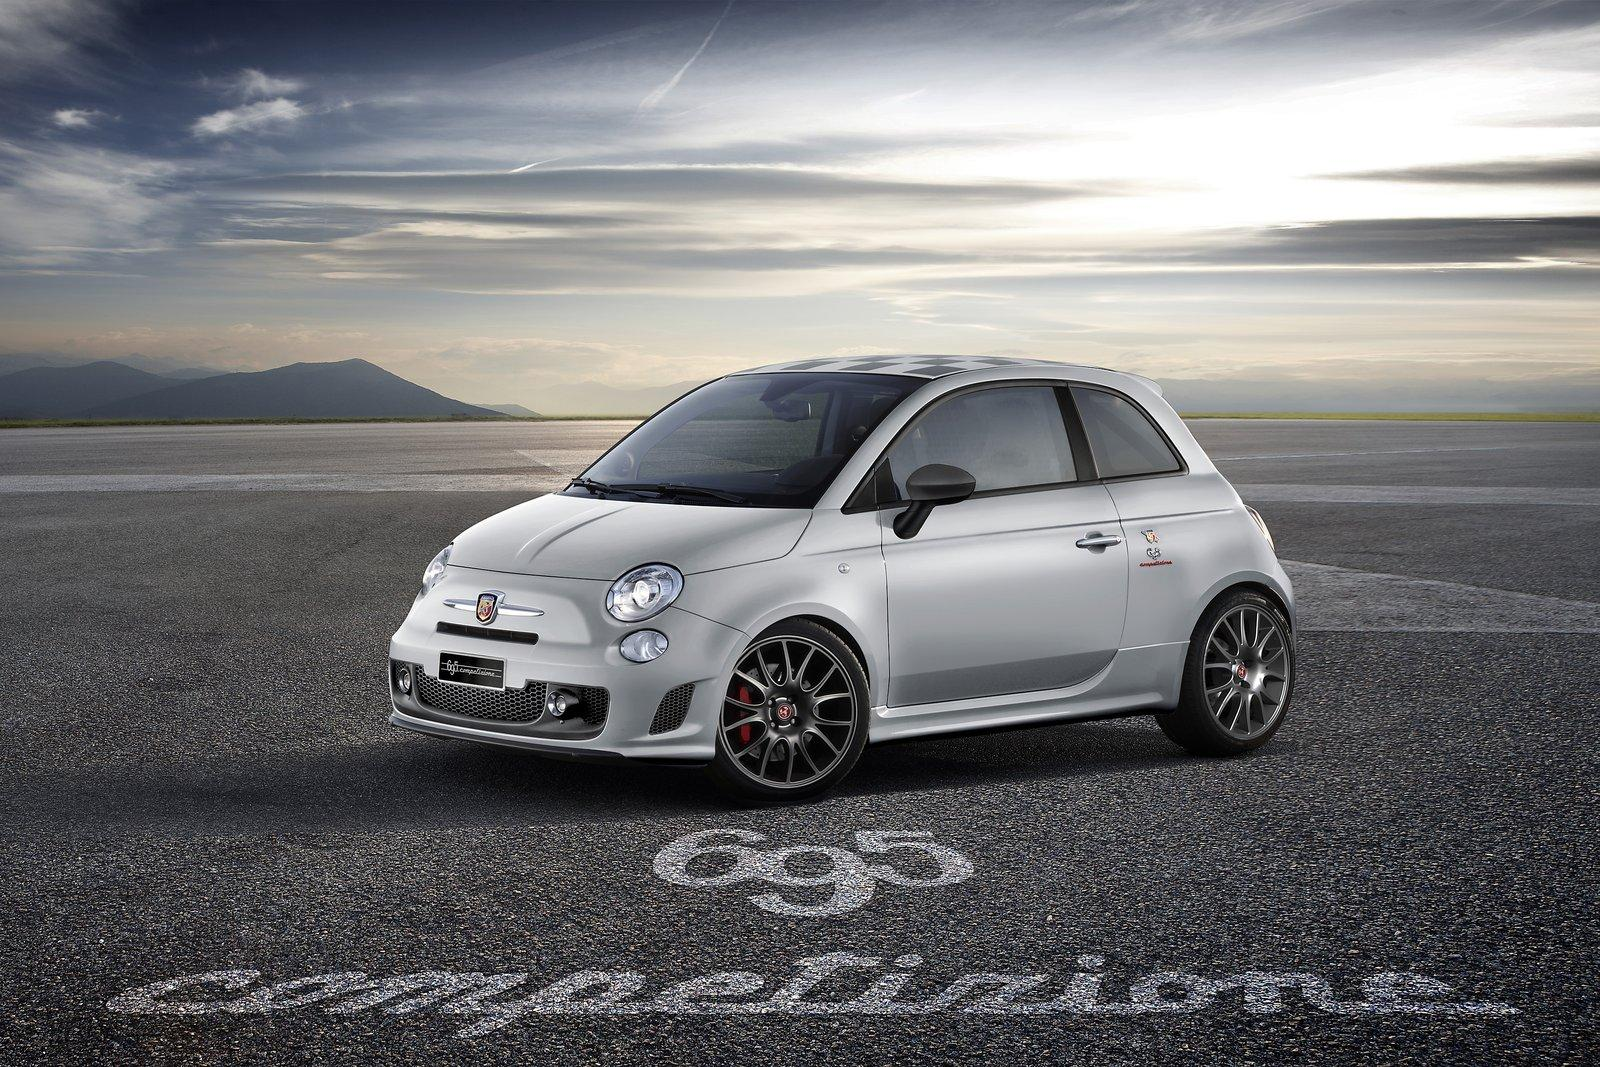 2012 Abarth 500 Cabrio Italia photos 2012 Abarth 500 Cabrio Italia with Technical Features